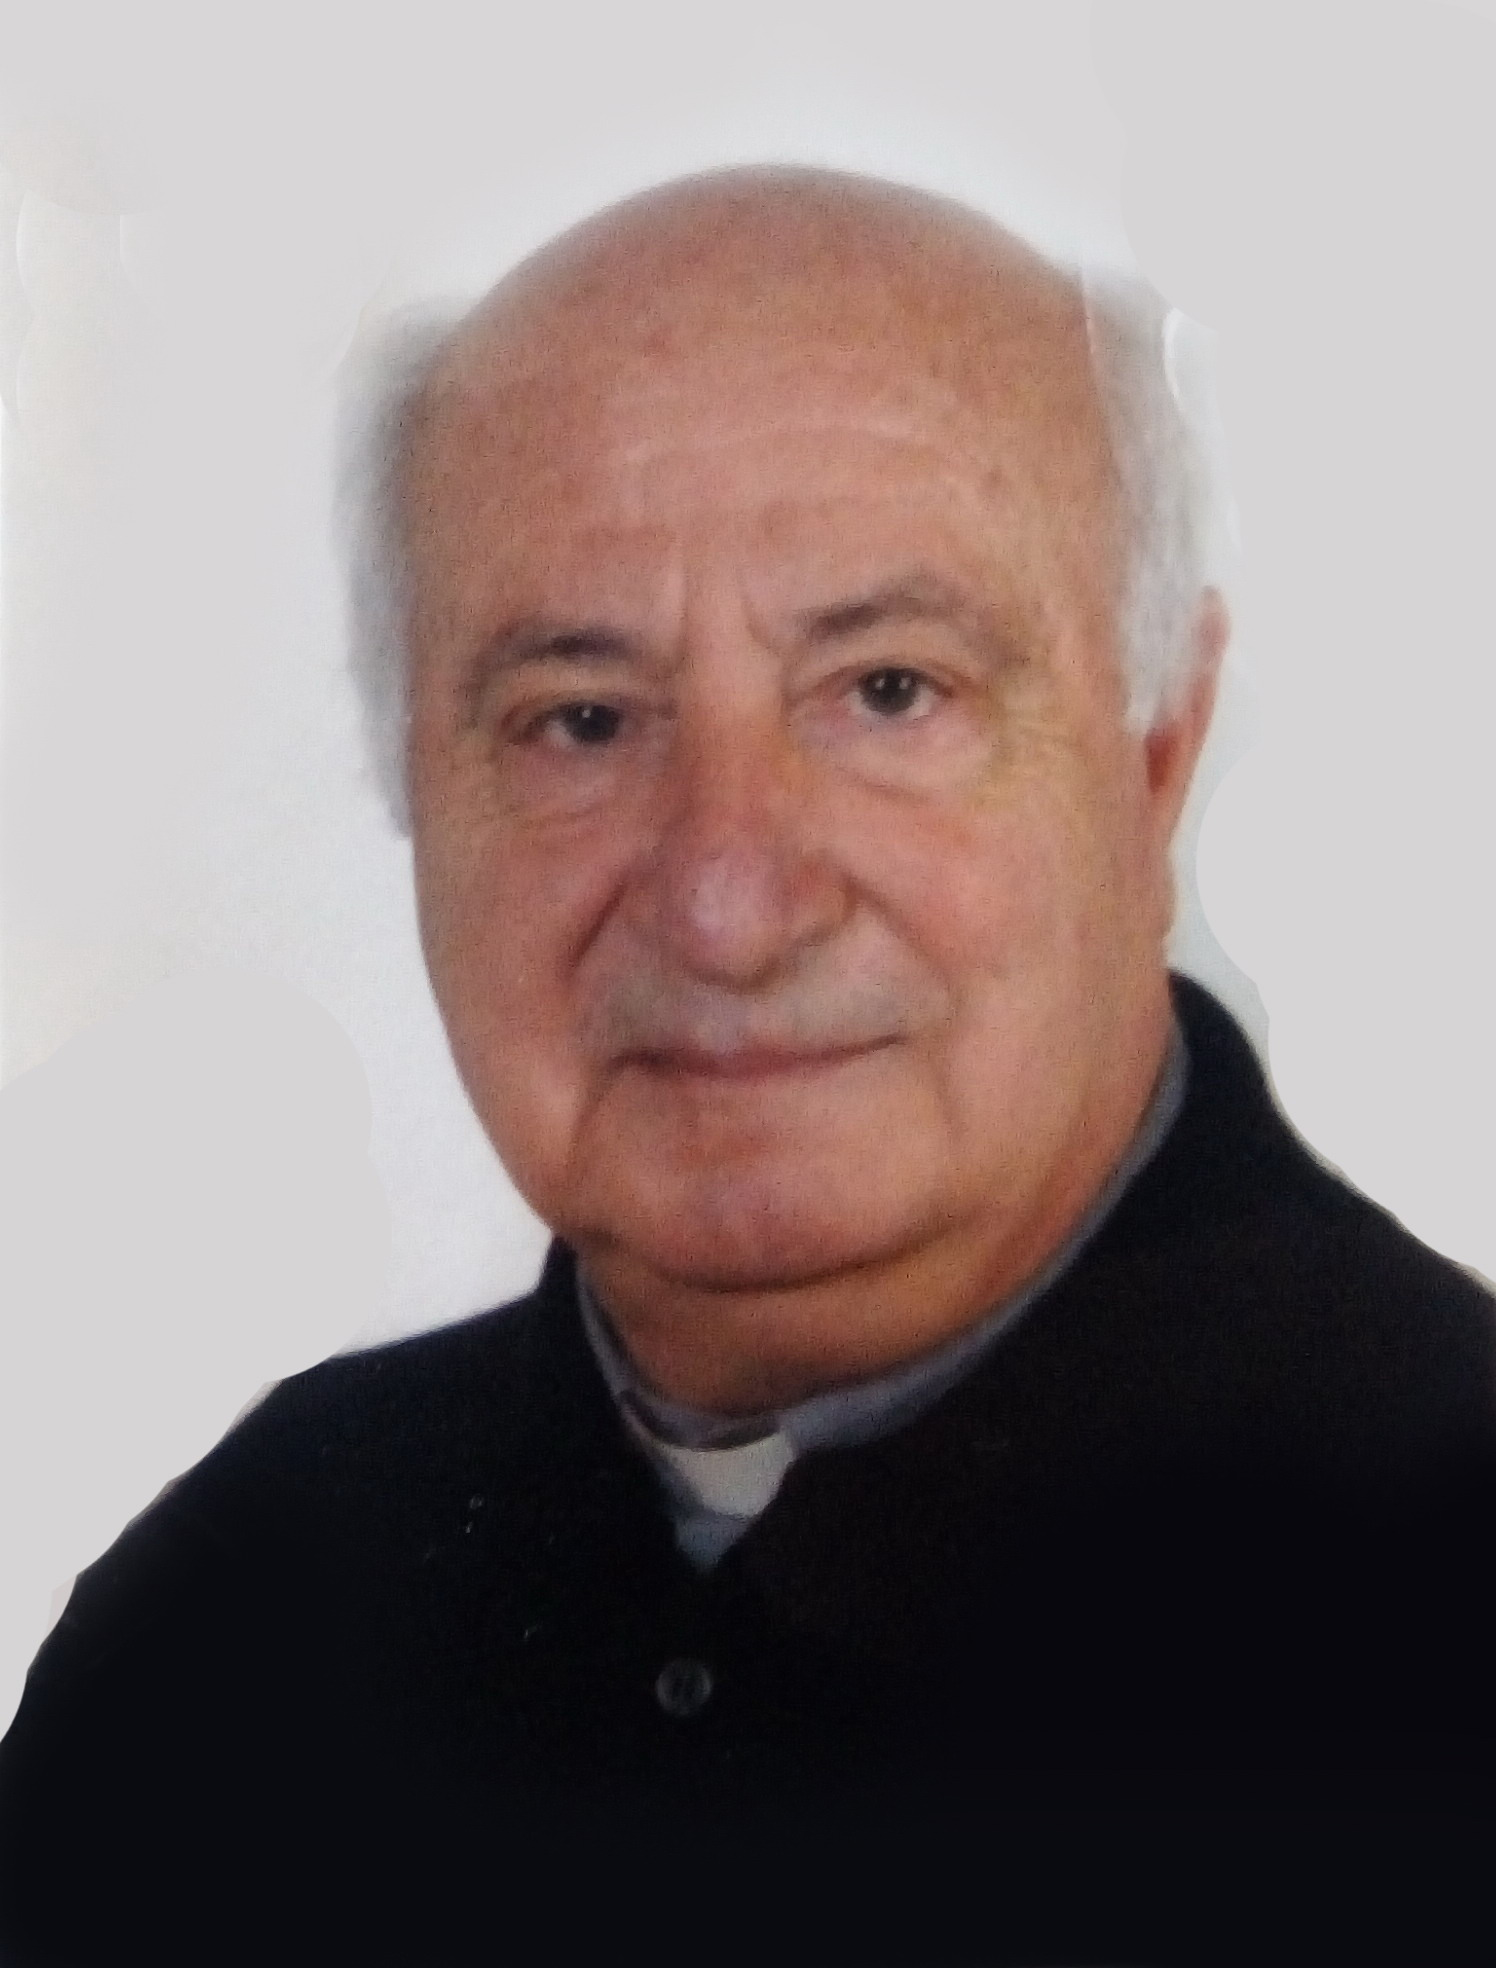 Don Franco Oliverio